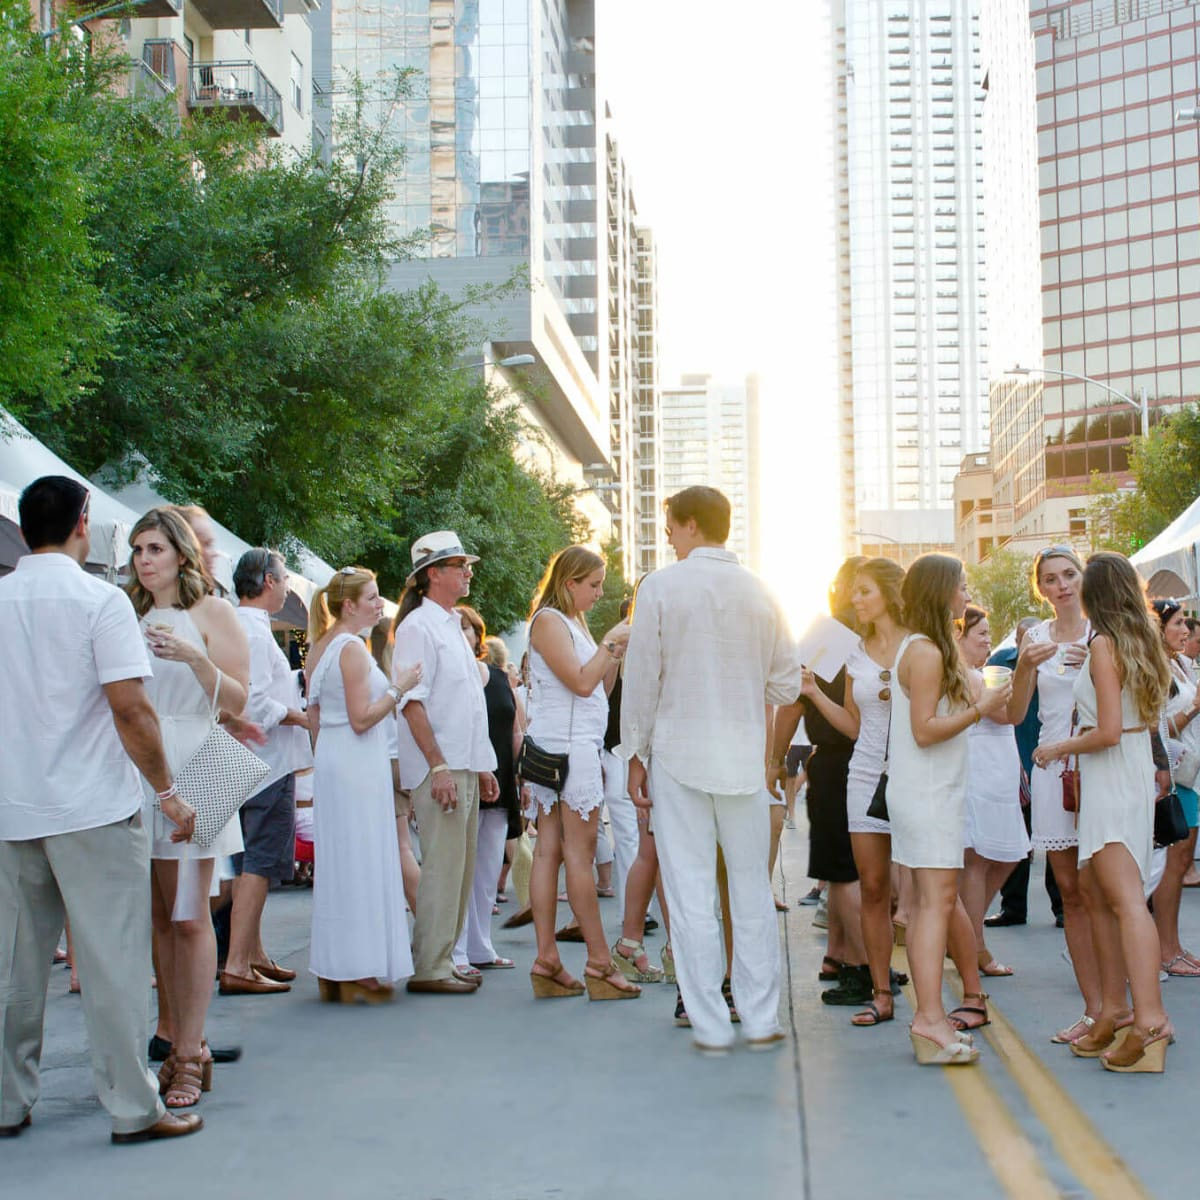 2nd Street District White Linen Night 2016 crowd